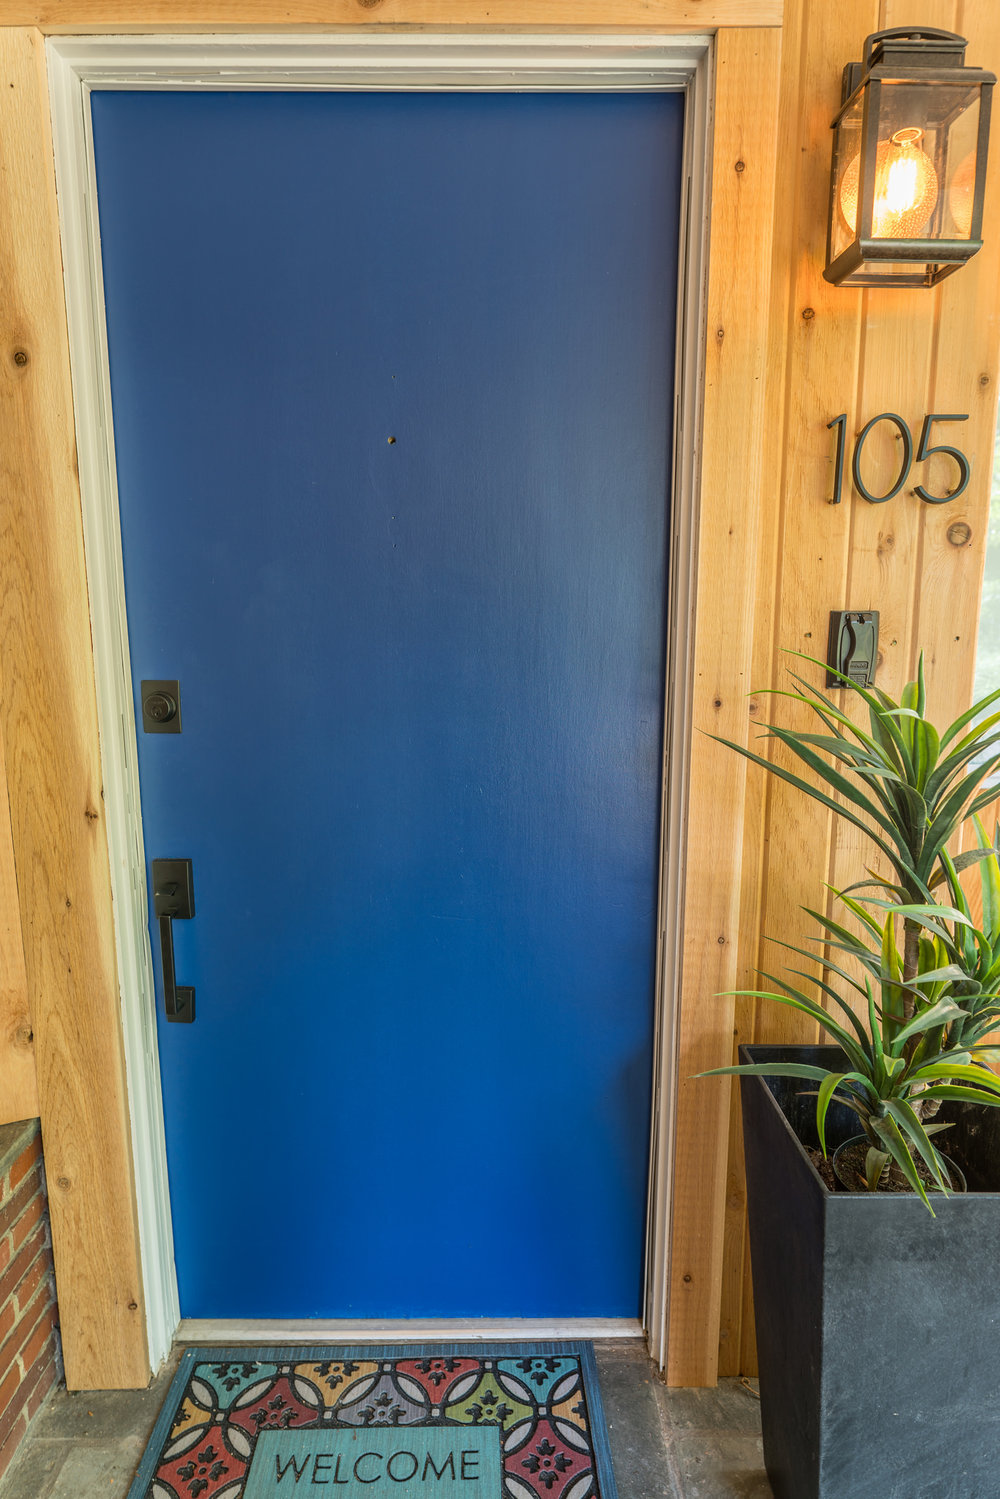 Cedar siding and blue doors